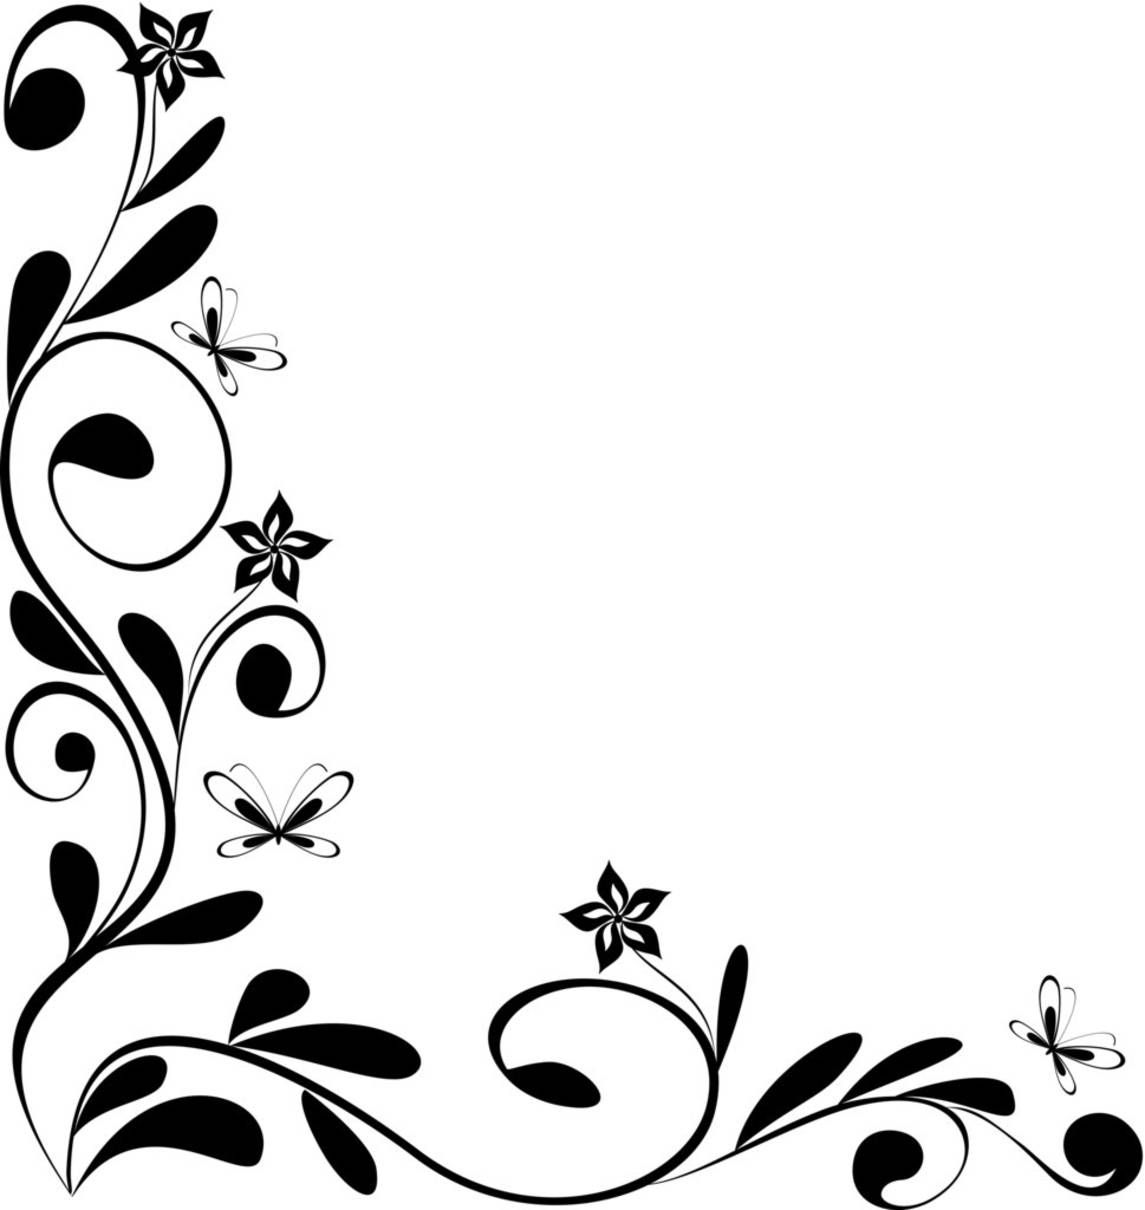 flower border clip art flower club pinterest corner border rh pinterest com corner clipart black and white corner clipart images